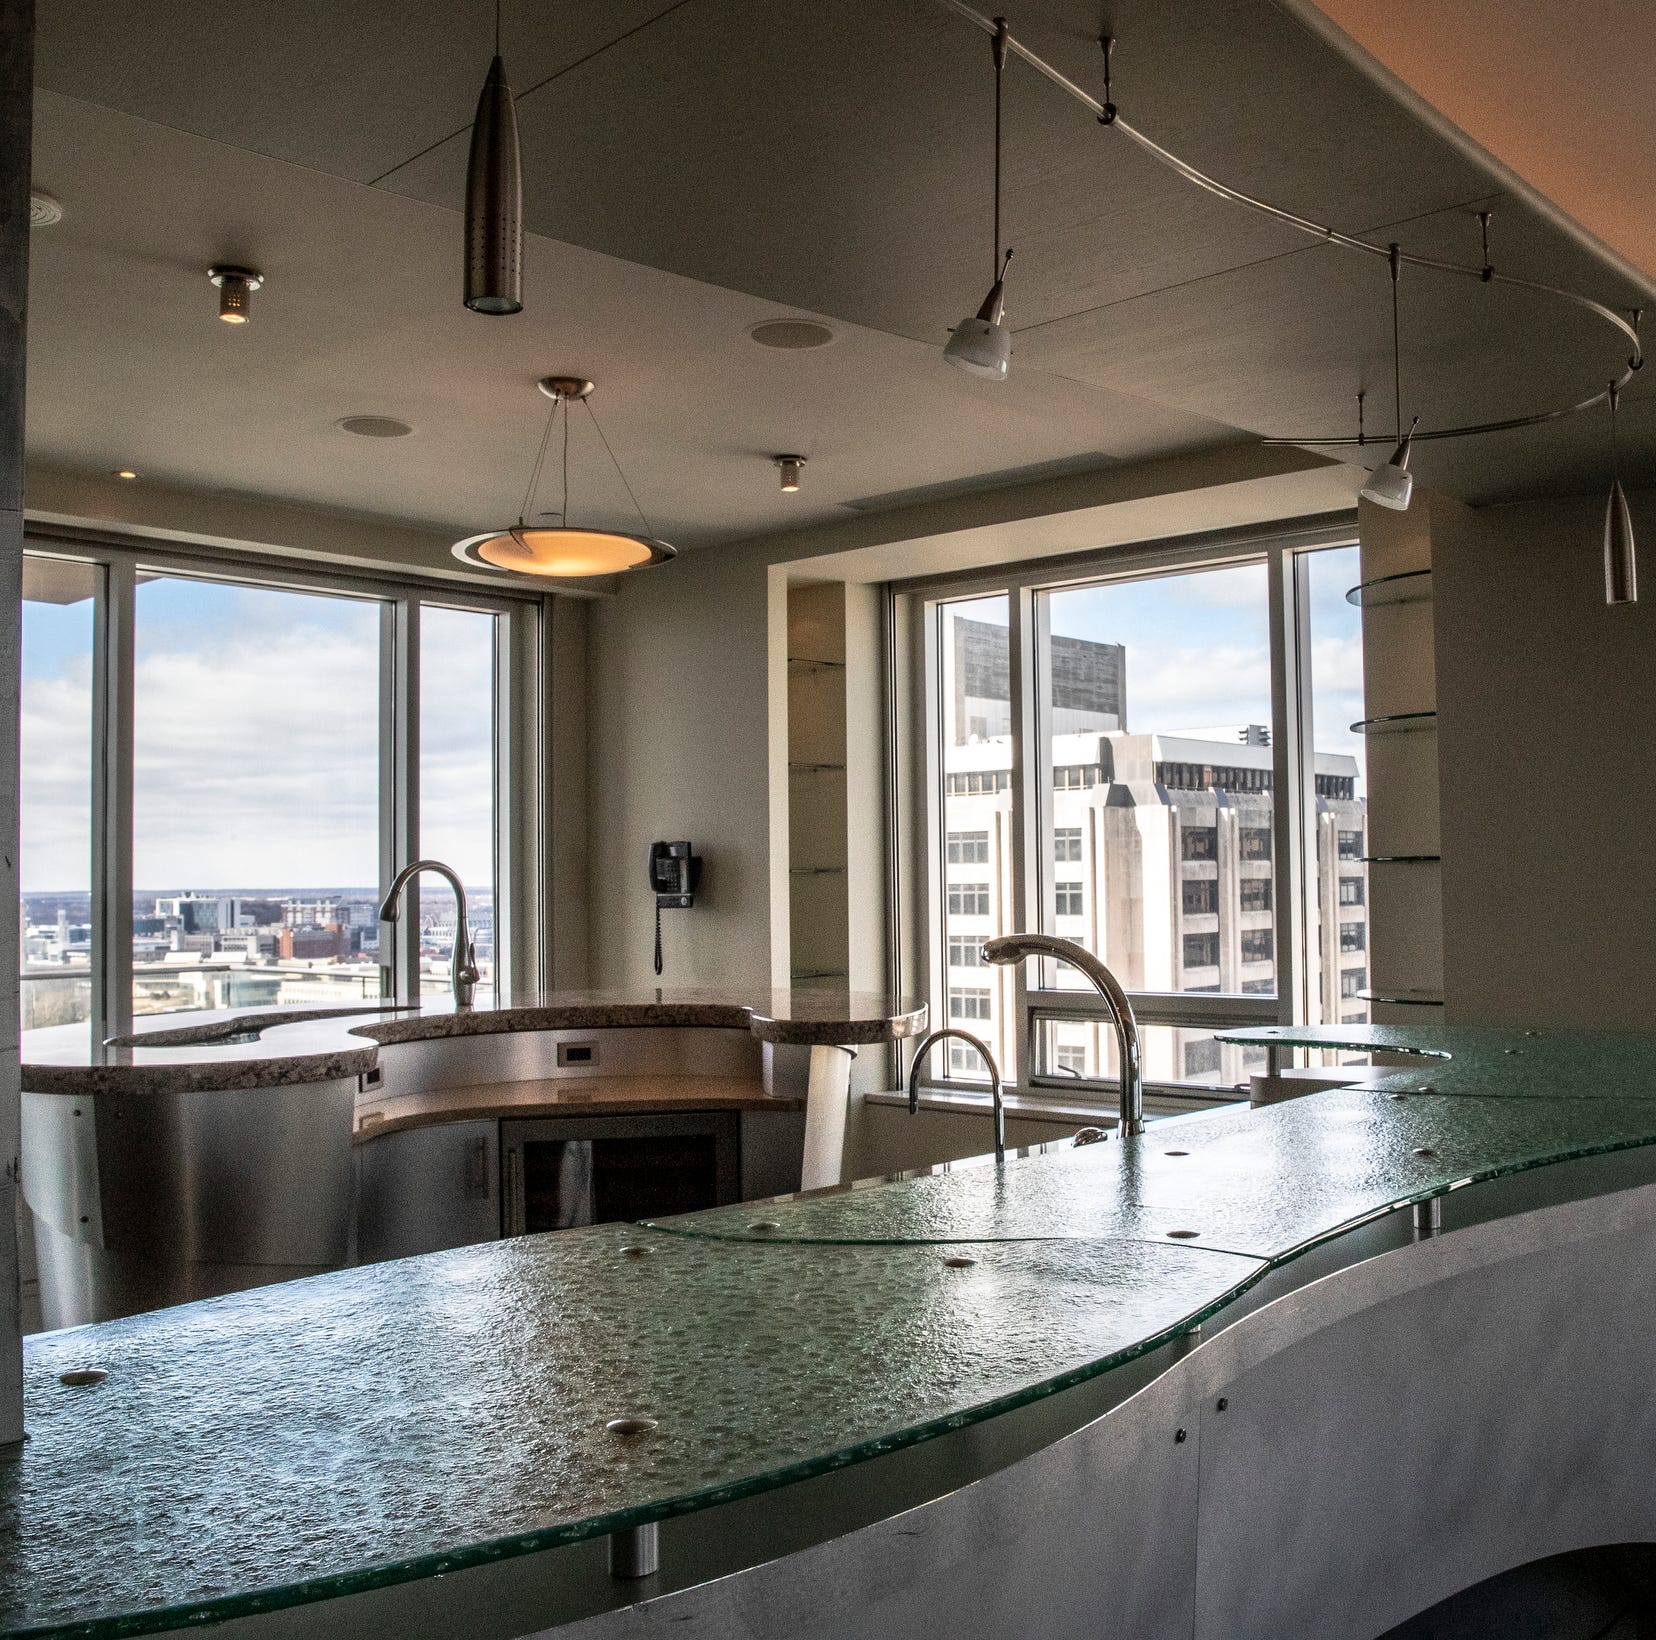 Hot Property: $4.5M Conrad condo is most expensive apartment in Indianapolis market